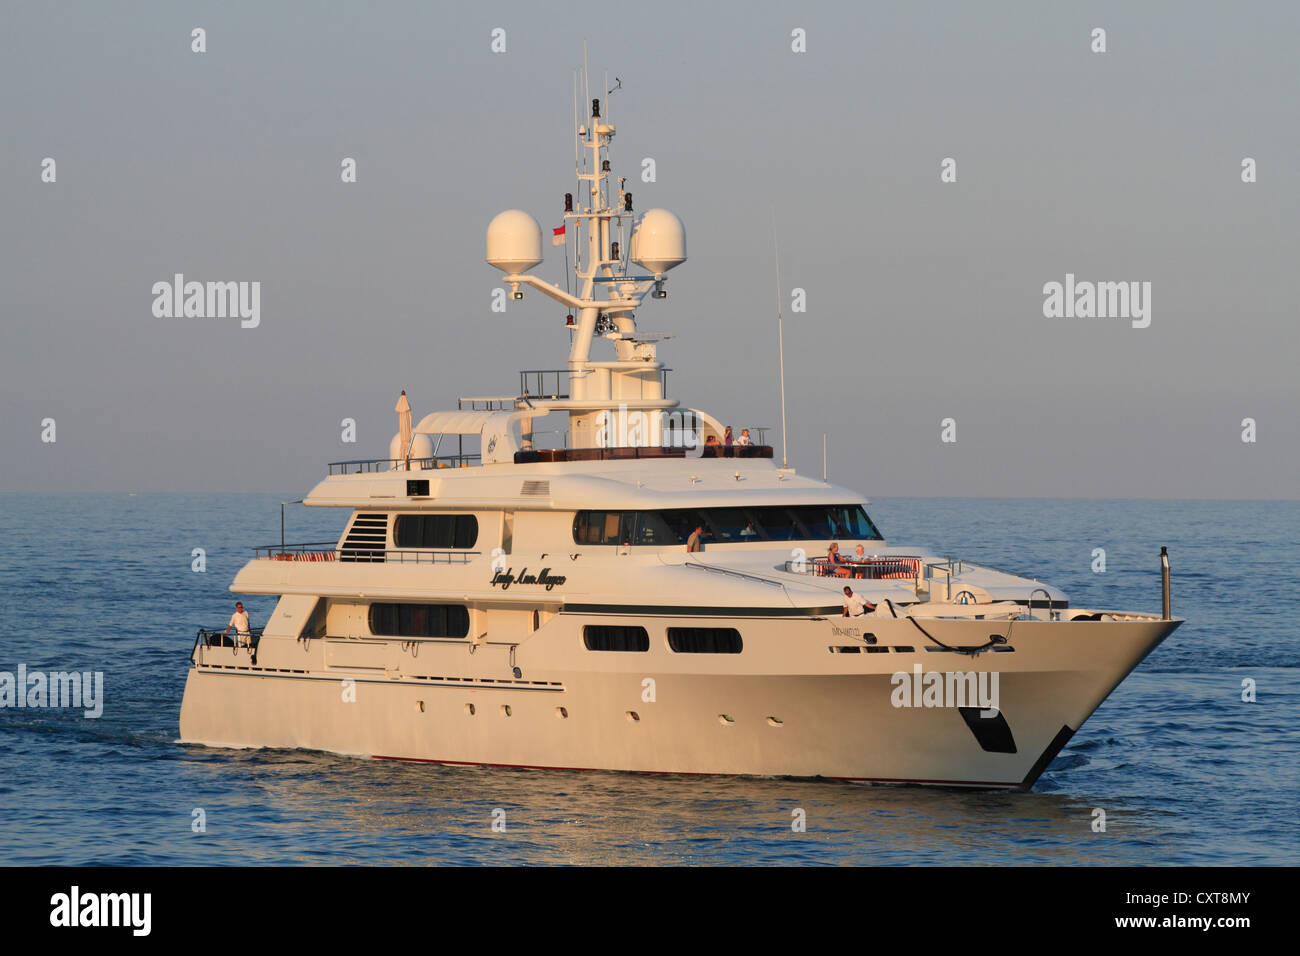 Lady Ann Magee, a cruiser built by Codecasa, length: 49.90 meters, built in 2001, Monaco, French Riviera, Mediterranean - Stock Image